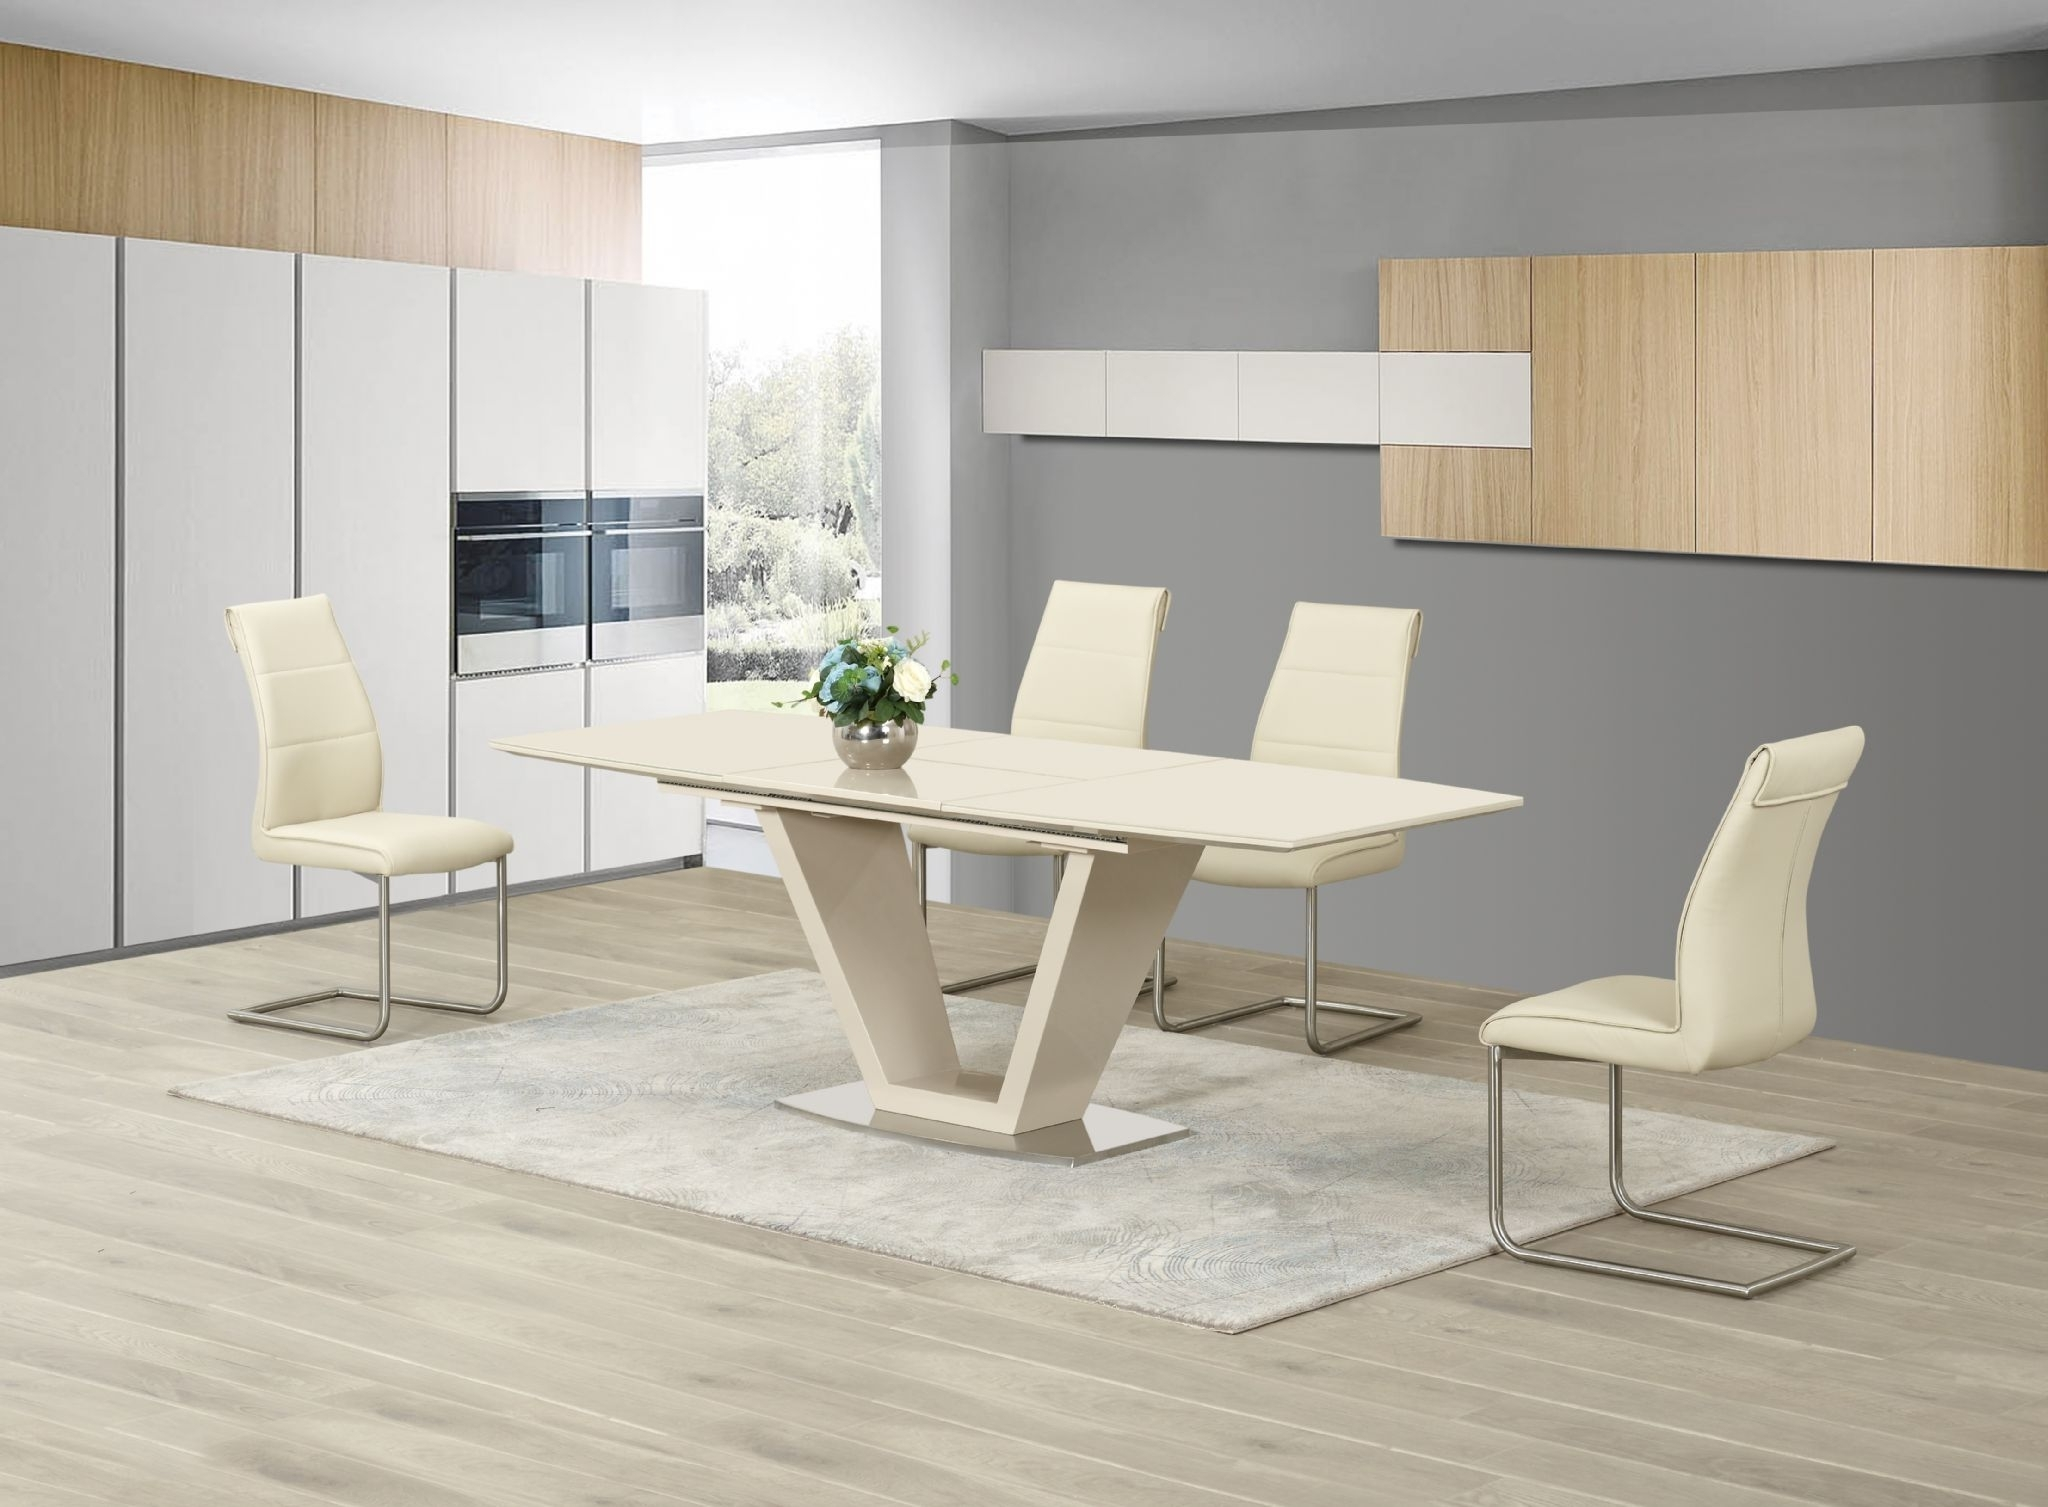 Best And Newest Ga Loriga Cream Gloss Glass Designer Dining Table Extending 160/220 Cm  Chairs 2 Colours Intended For Cheap White High Gloss Dining Tables (Gallery 18 of 25)